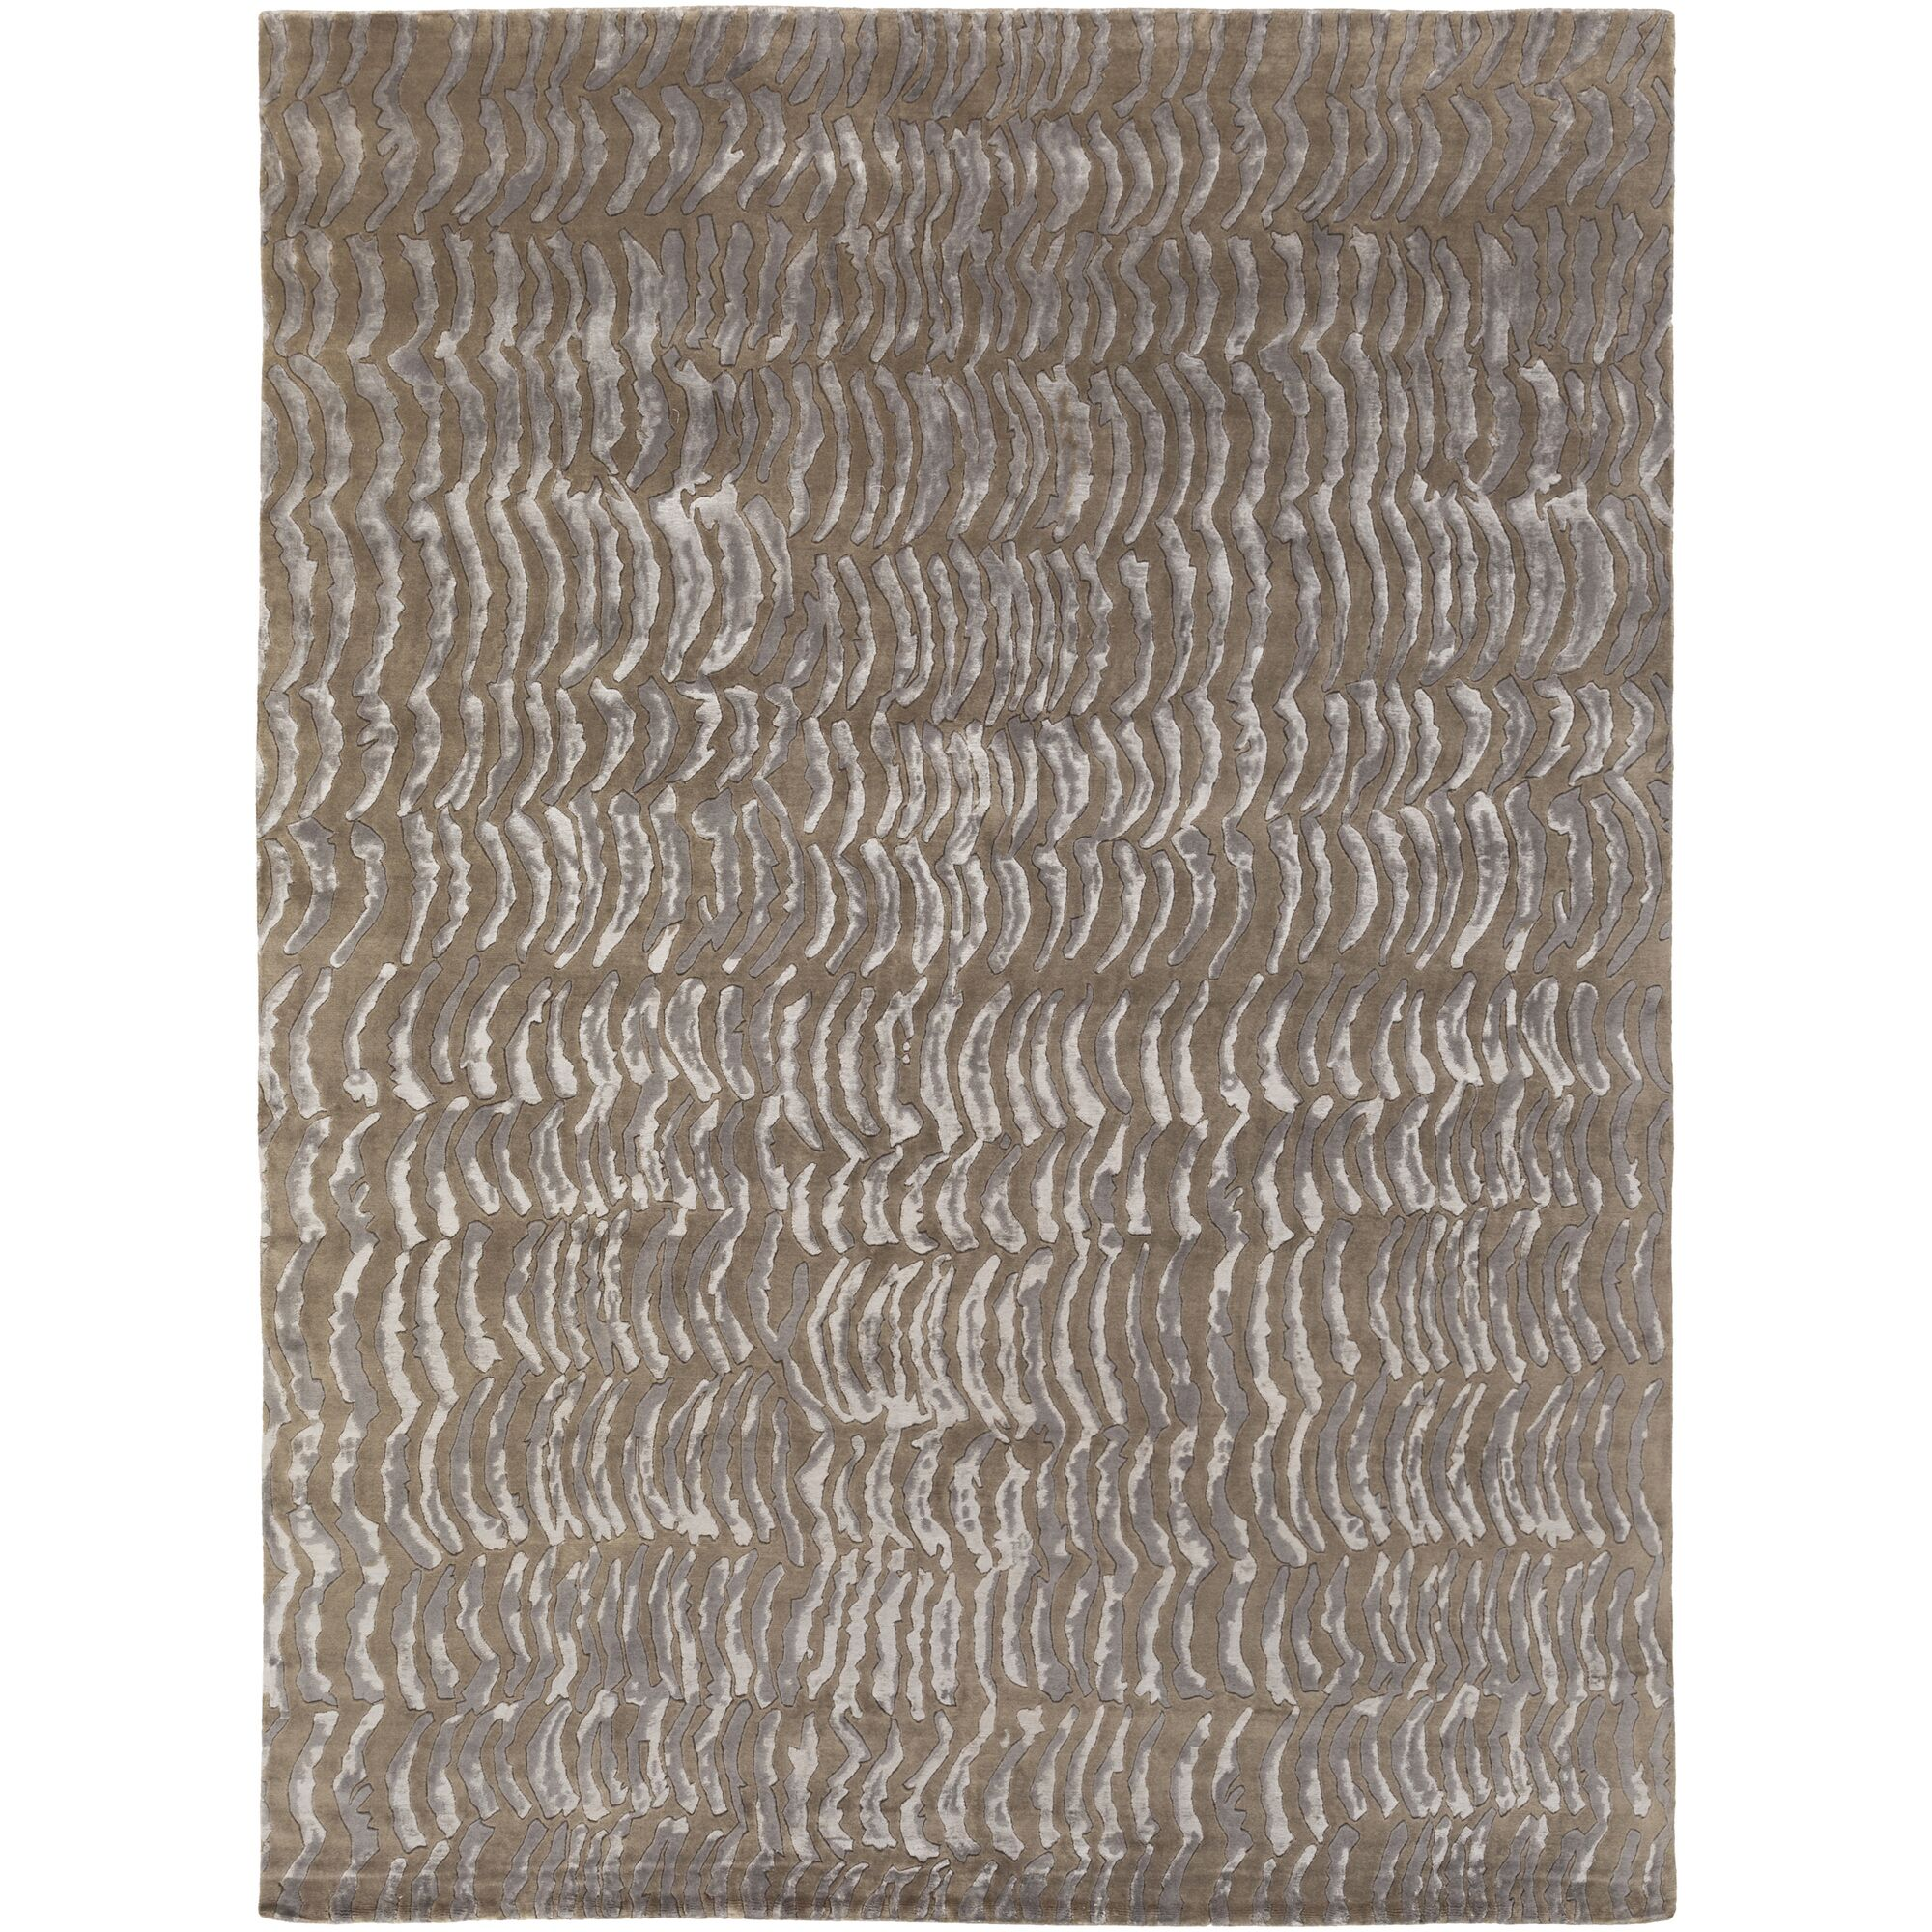 Dixon Moss Area Rug Rug Size: Rectangle 5' x 8'